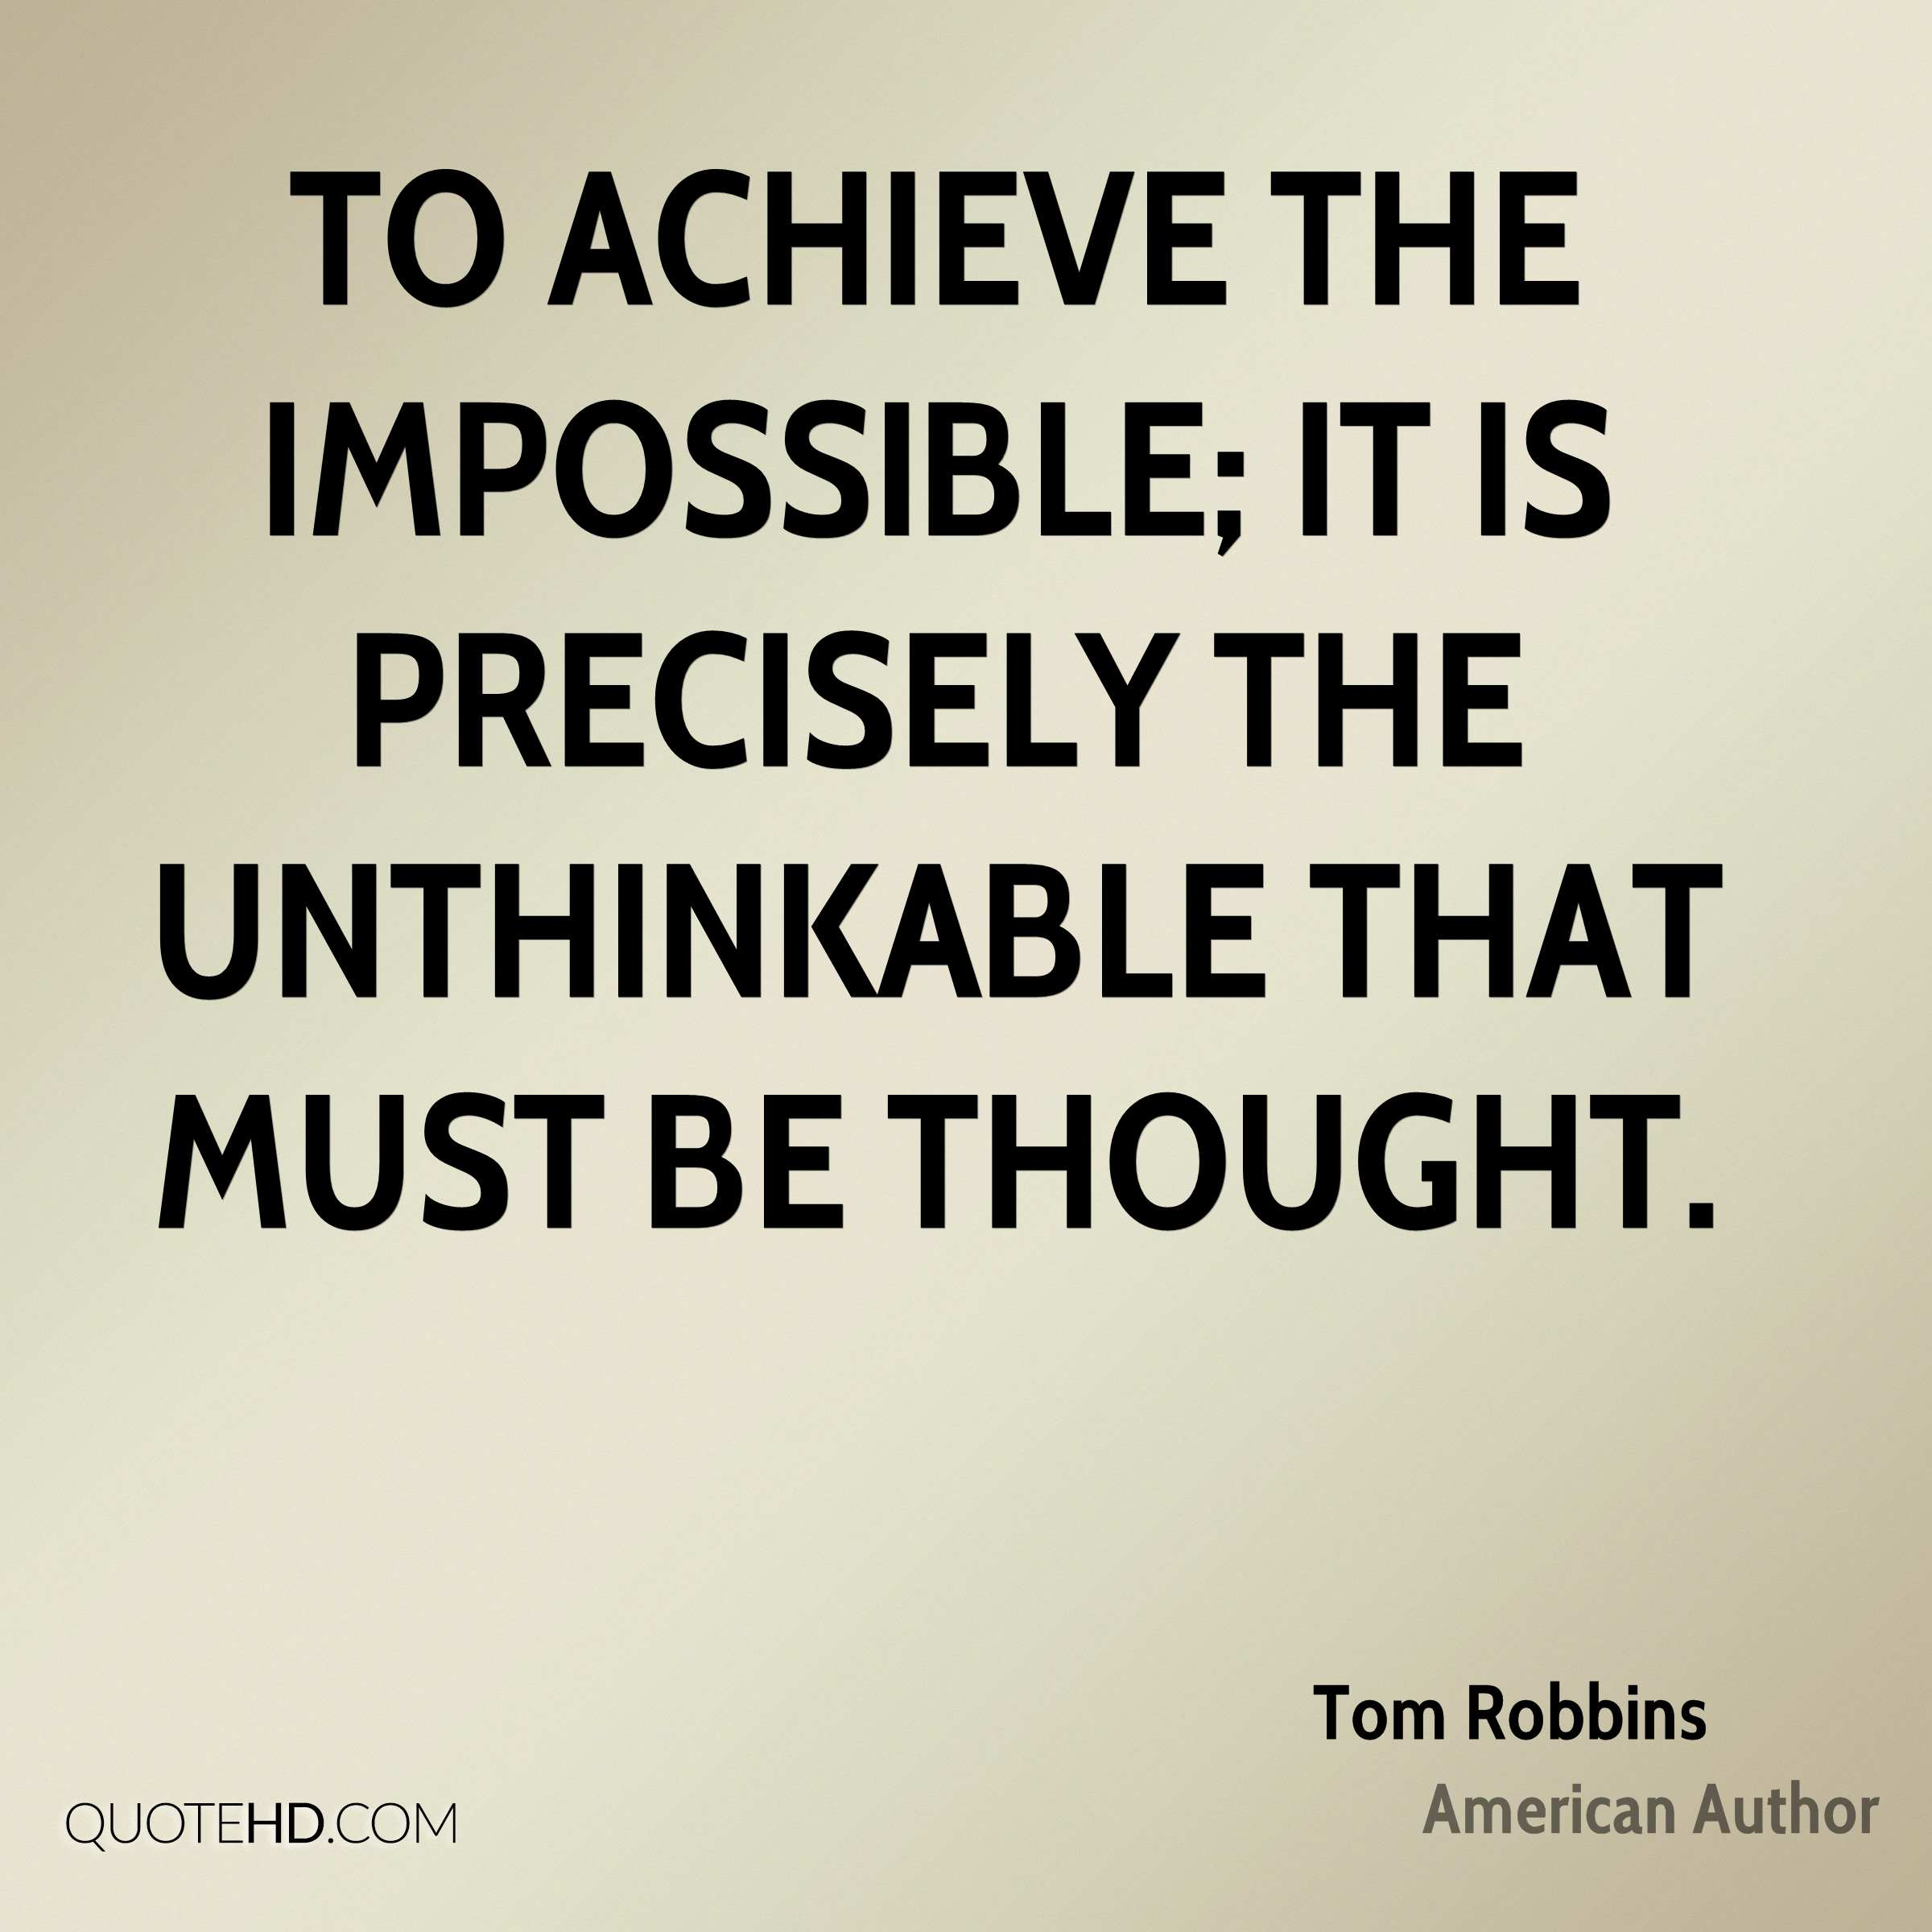 To achieve the impossible; it is precisely the unthinkable that must be thought.